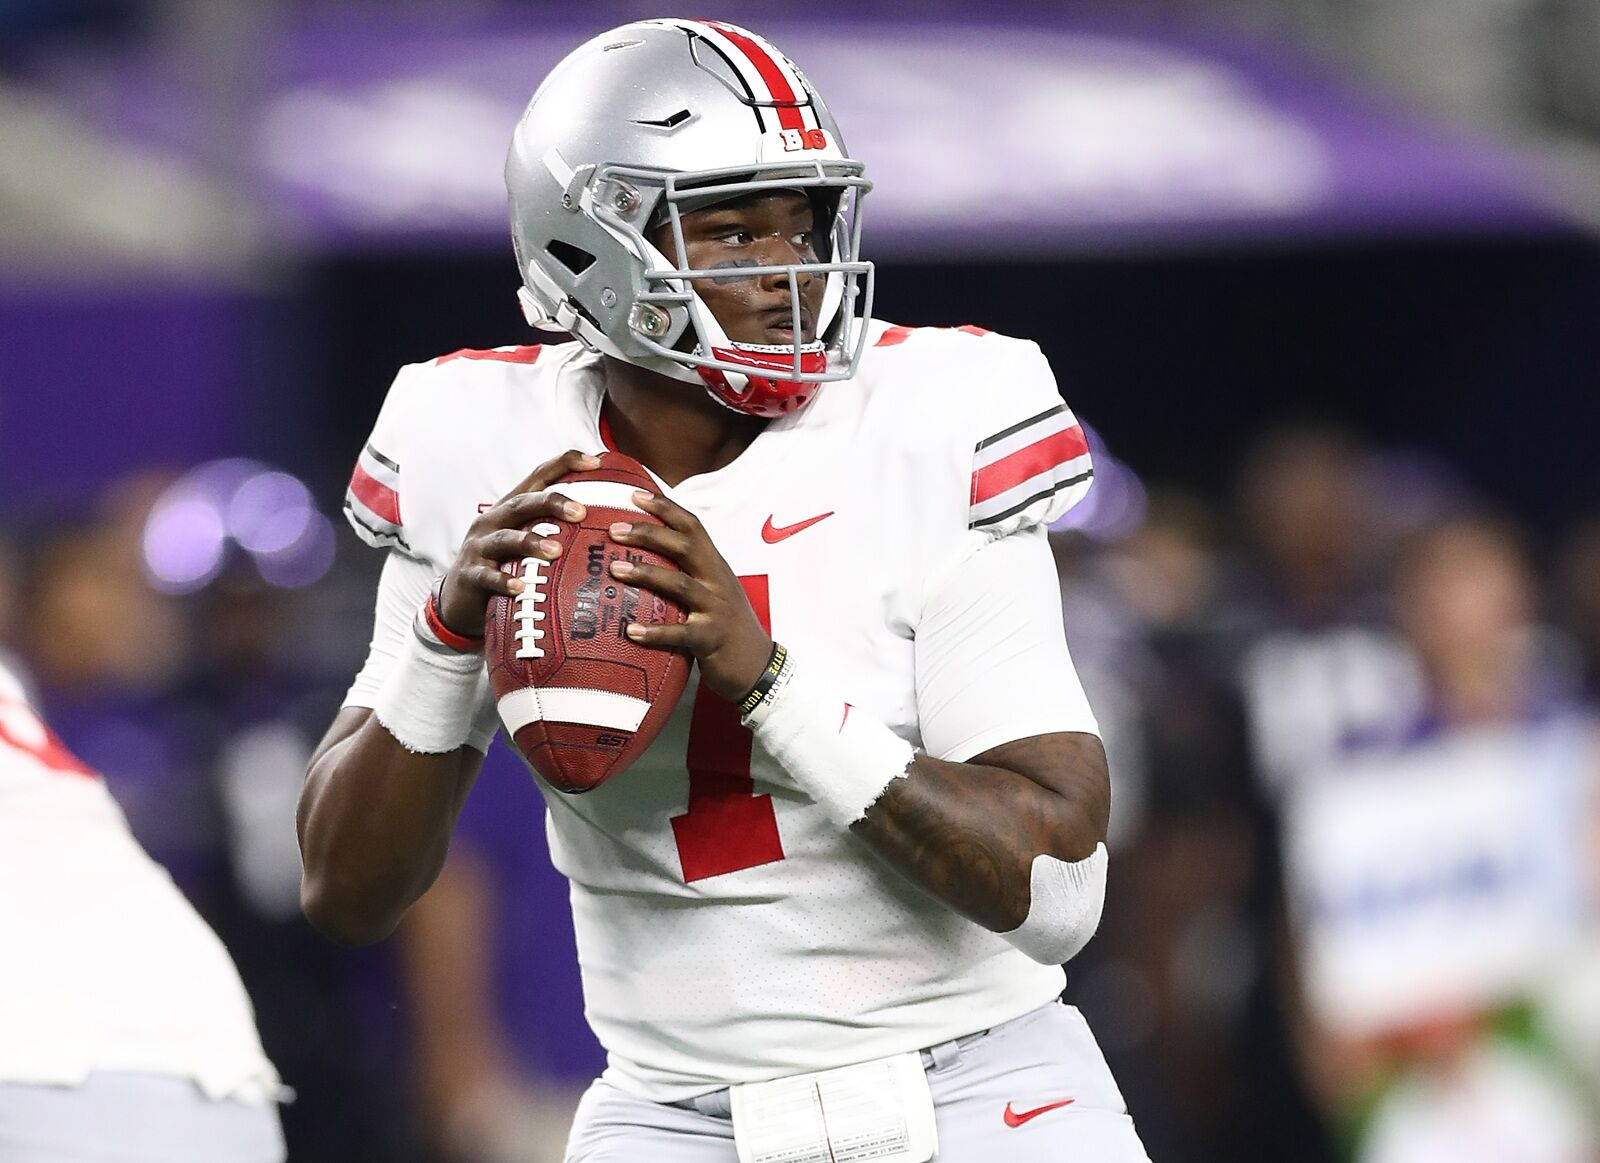 LOOK: Dwayne Haskins shows off deep ball at Pro Day